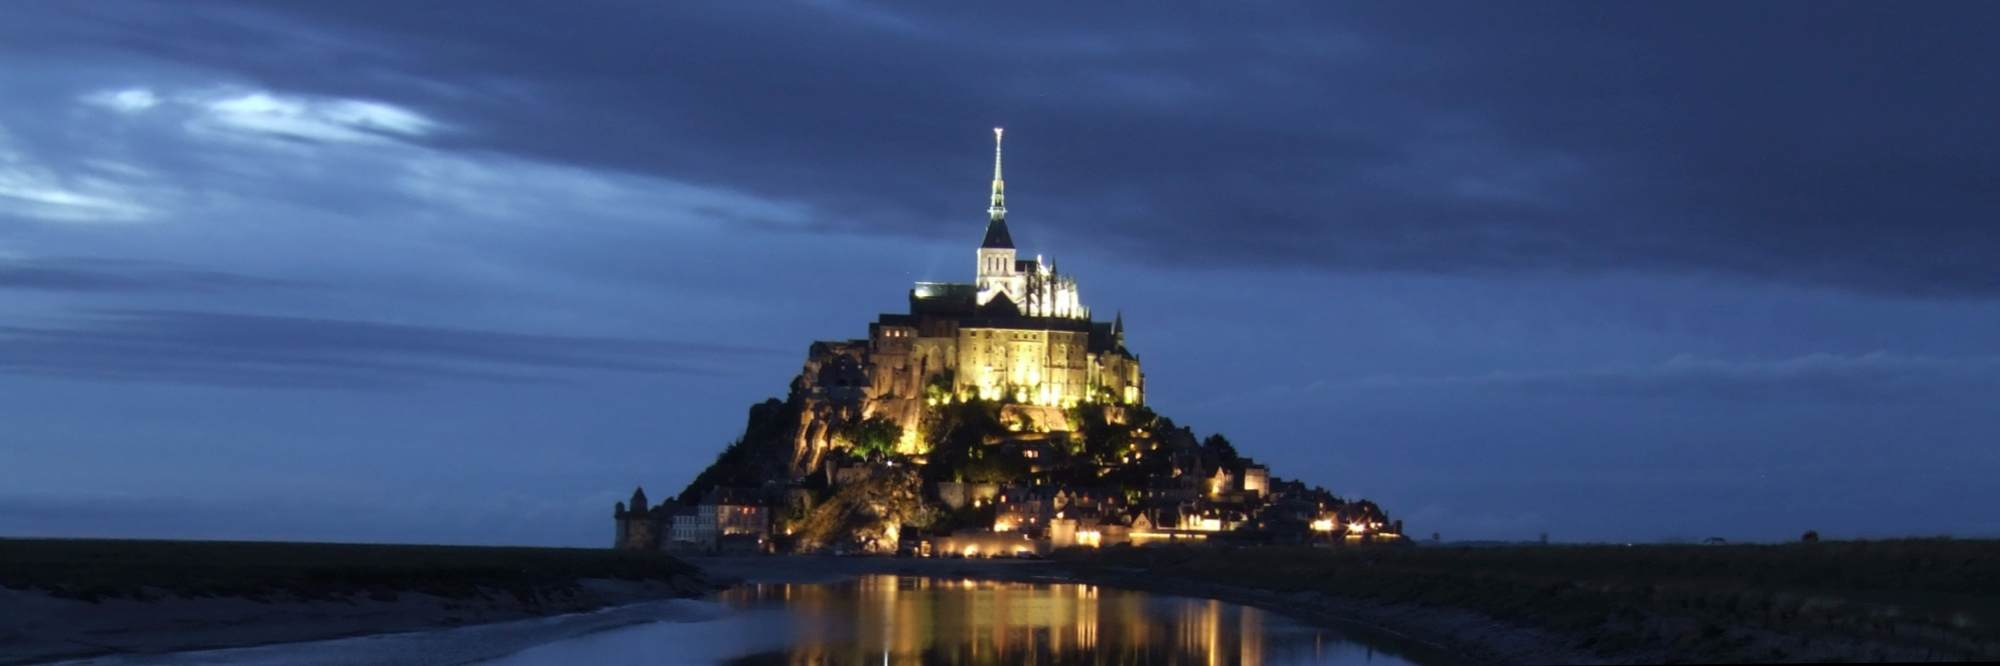 header foto tour de manche mont saint michel by night {{Information |Description={{en|1=The Mont St. Michel at night with a reflection in the water}} |Source=Own work by uploader |Author=Lubosz |Date=2008:07:28 22:33:47 |Permission= |other_versions= }} specification{{Coor dms|48|37|36|N|1|30|